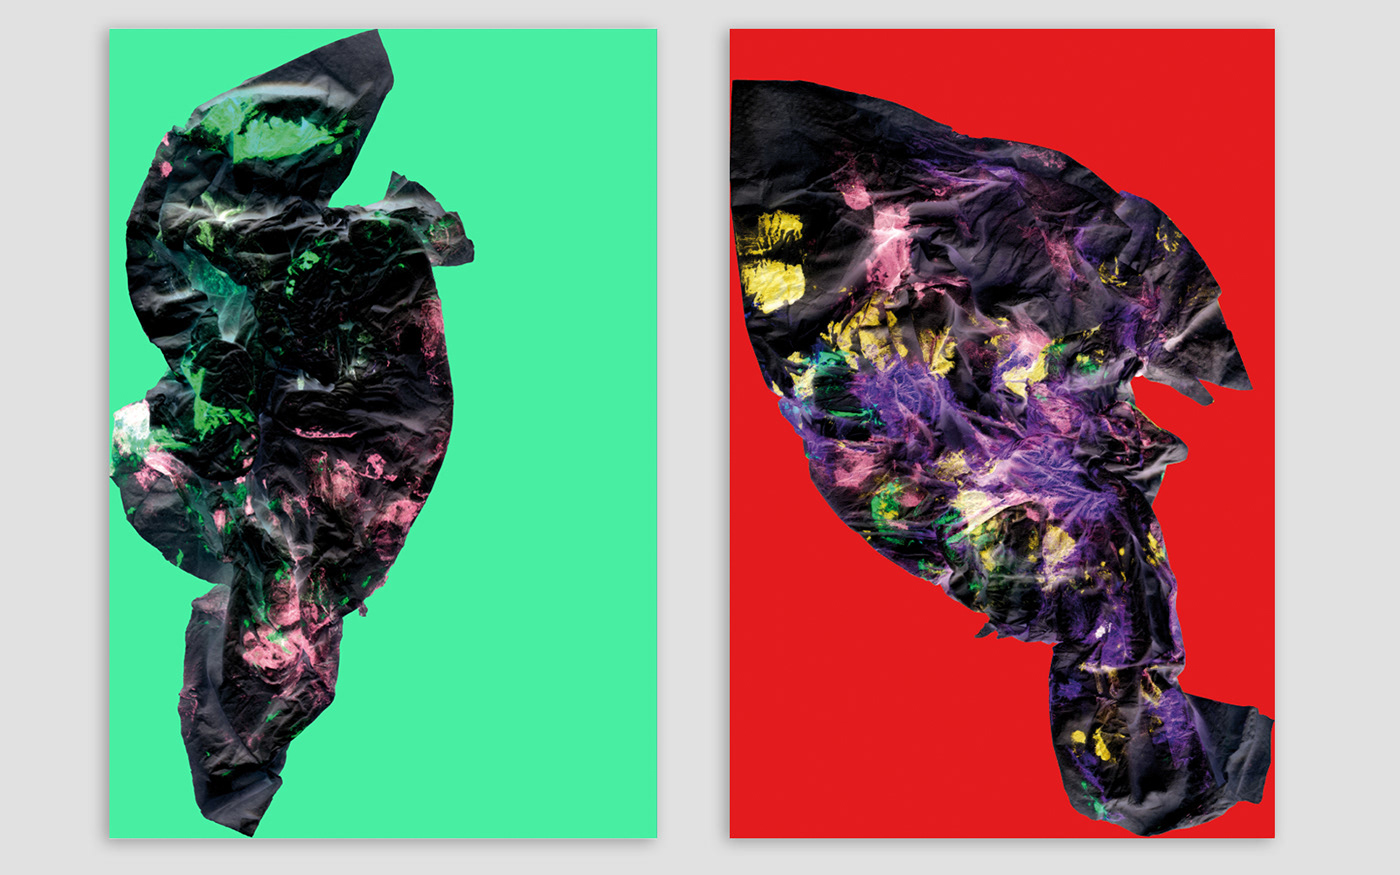 Two digital paintings with colors